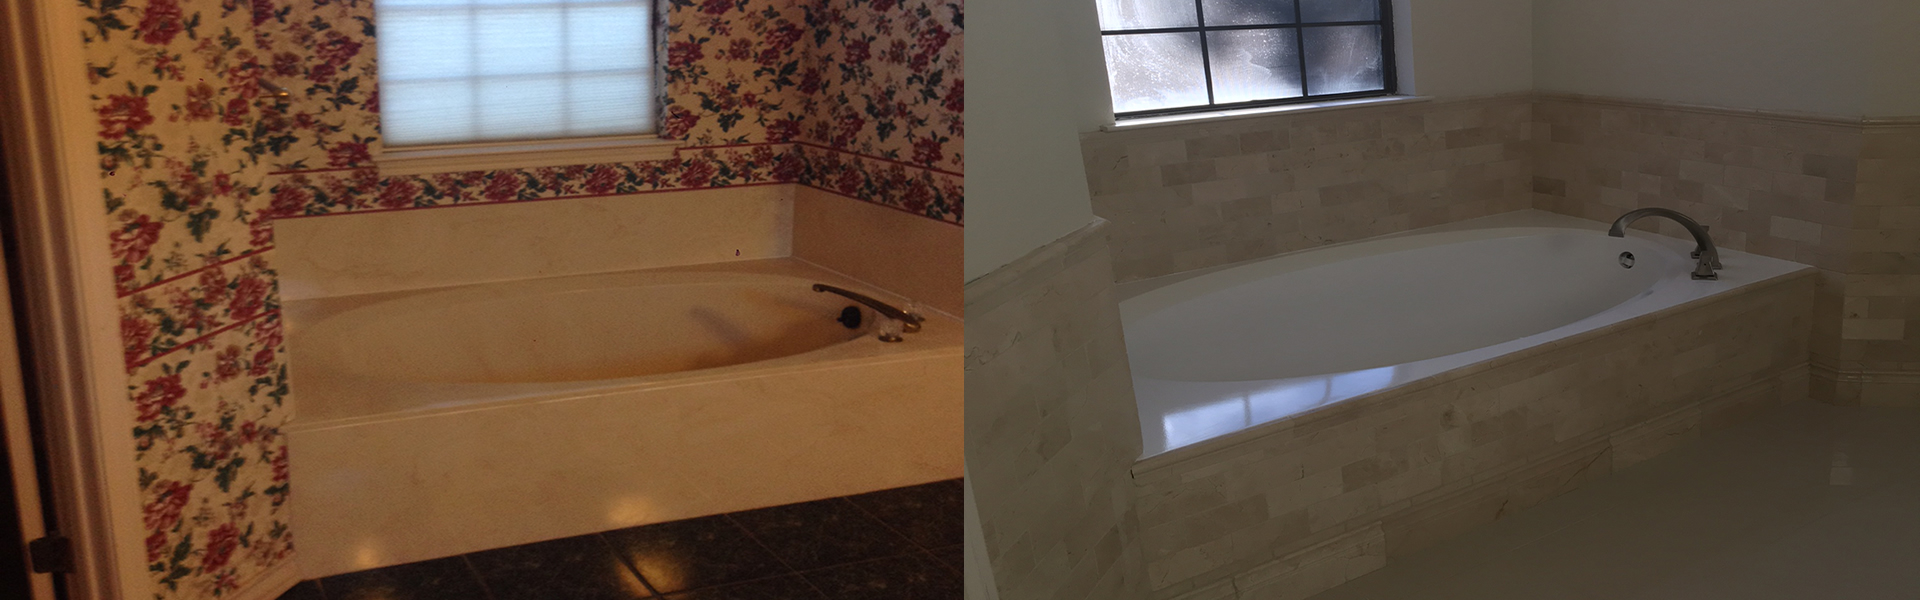 Exceptional BATHTUB REFINISHING SAN ANTONIO, Texas, CULTURED AND LAMINATE FORMICA,  AFFORDABLE CABINETS AND COUNTERTOPS RESURFACING, Cabinets Refacing, Tile,  ...